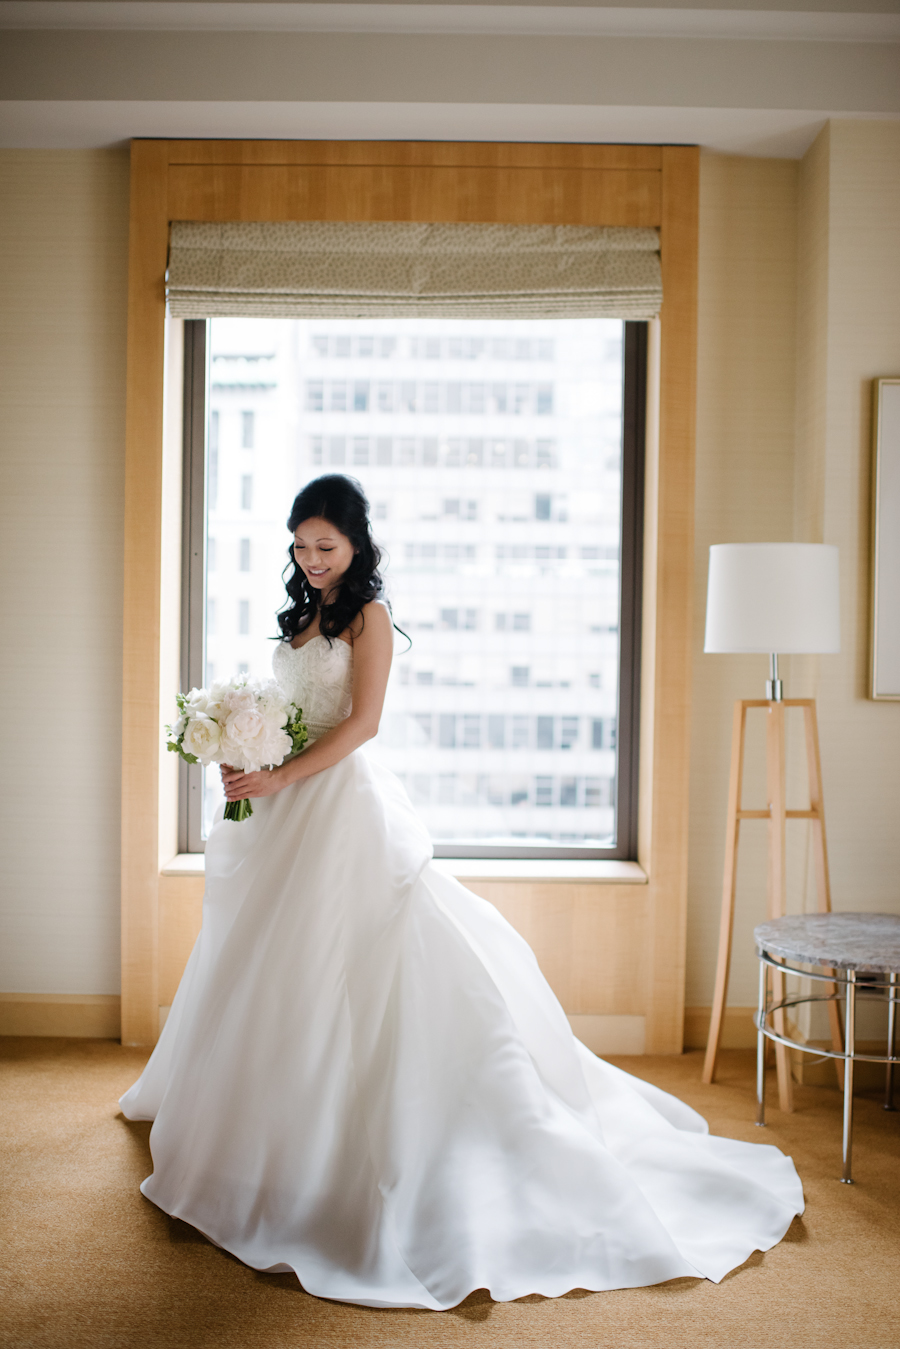 four seasons hotel wedding ang weddings and events brian hatton photography-10.jpg